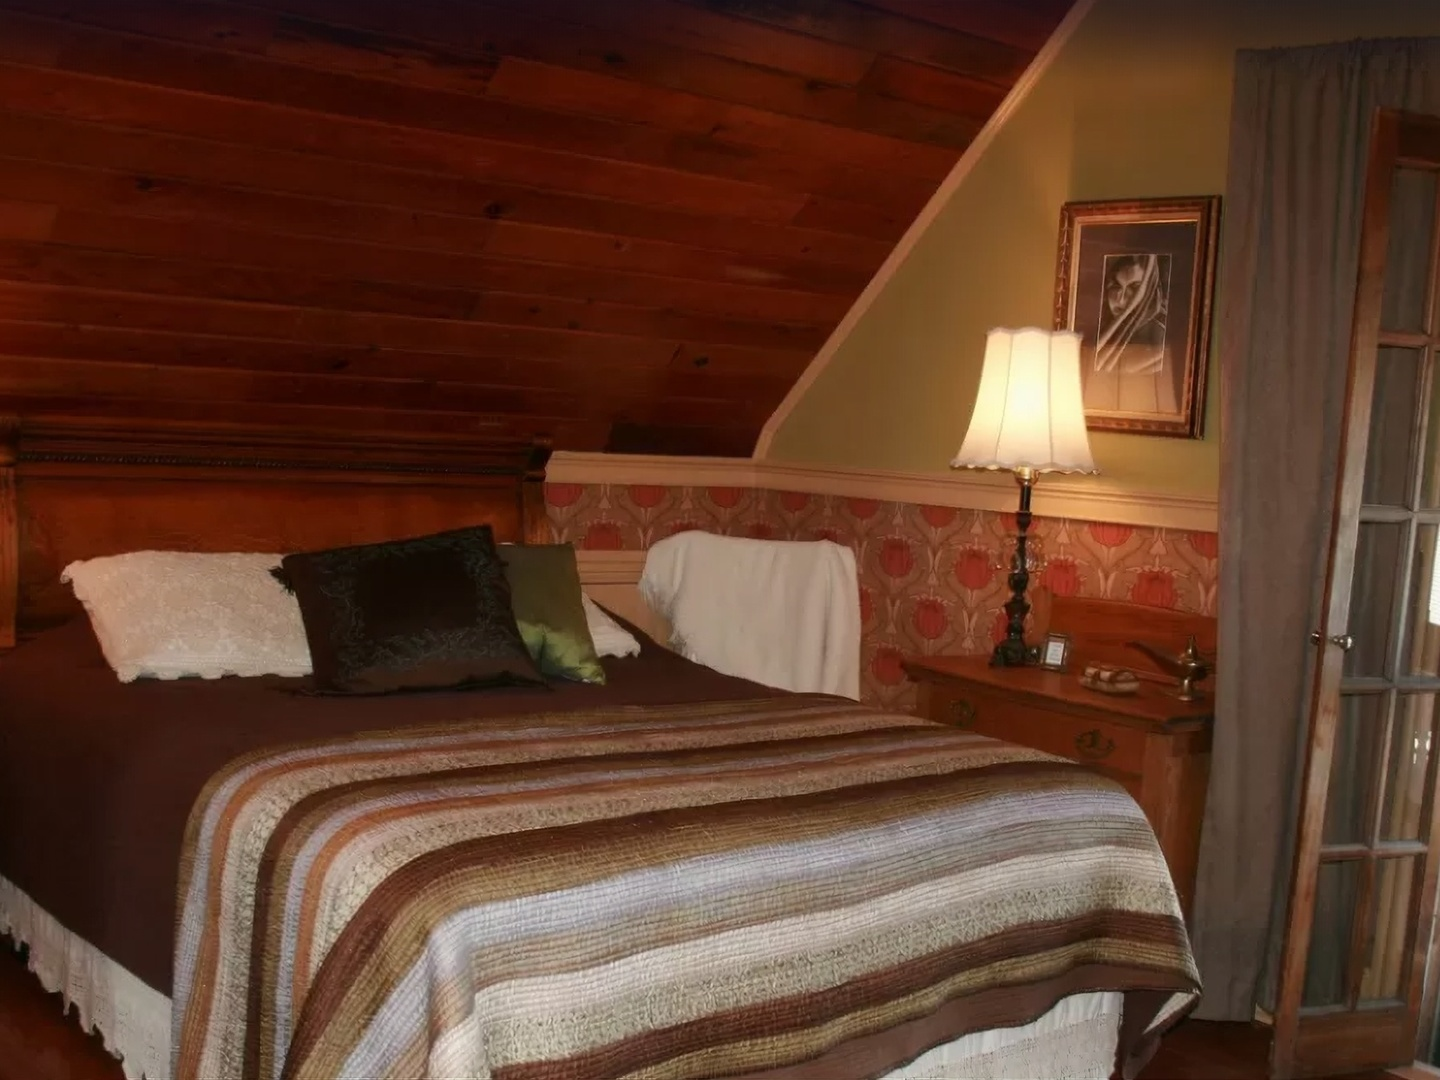 A bedroom with a large bed in a hotel room at The Sea Gypsy.